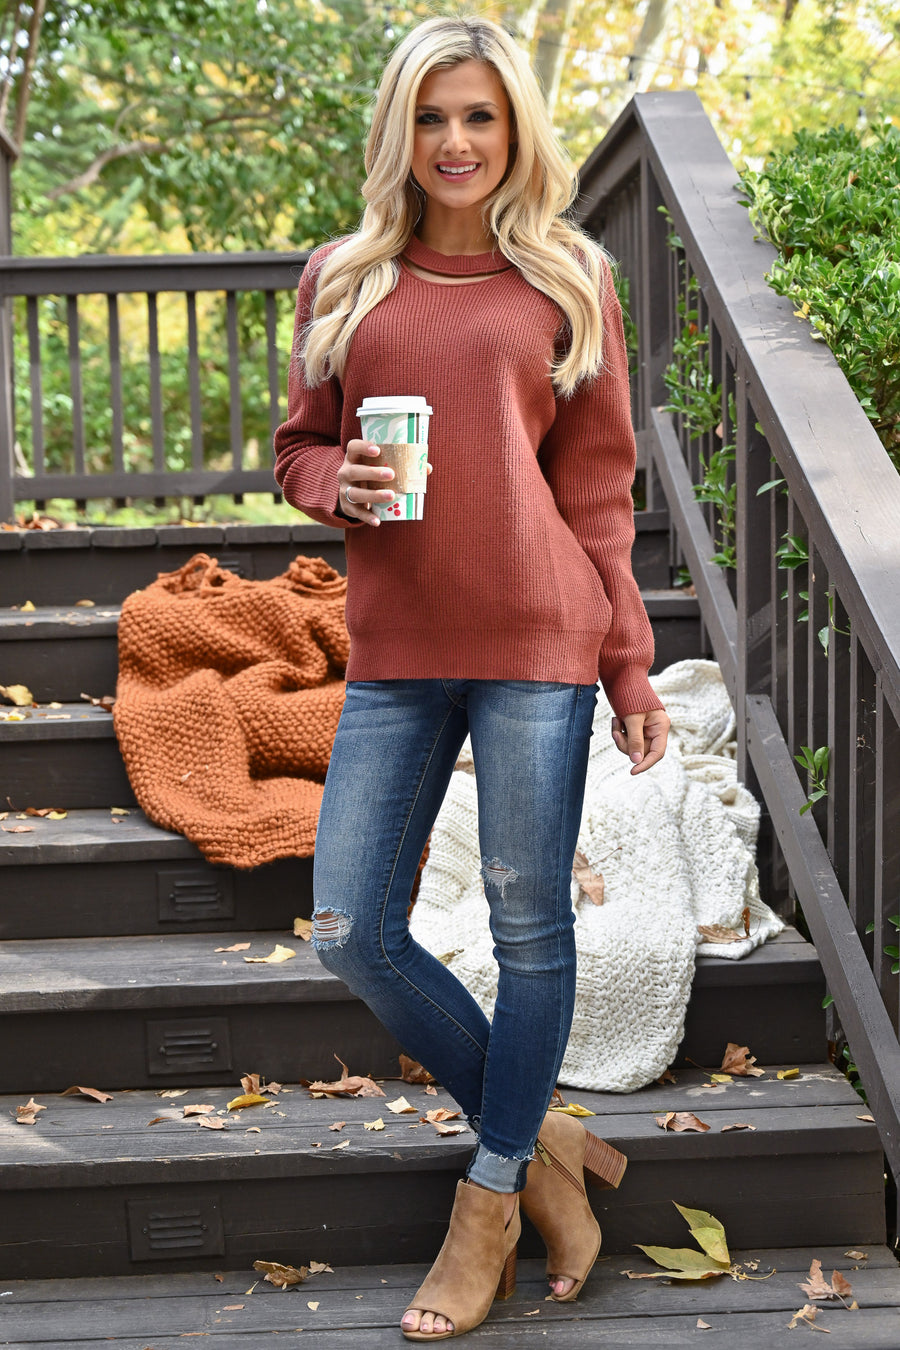 Feels Just Right Sweater - Rust women's chunky sweater with neckline cutout, closet candy boutique 1